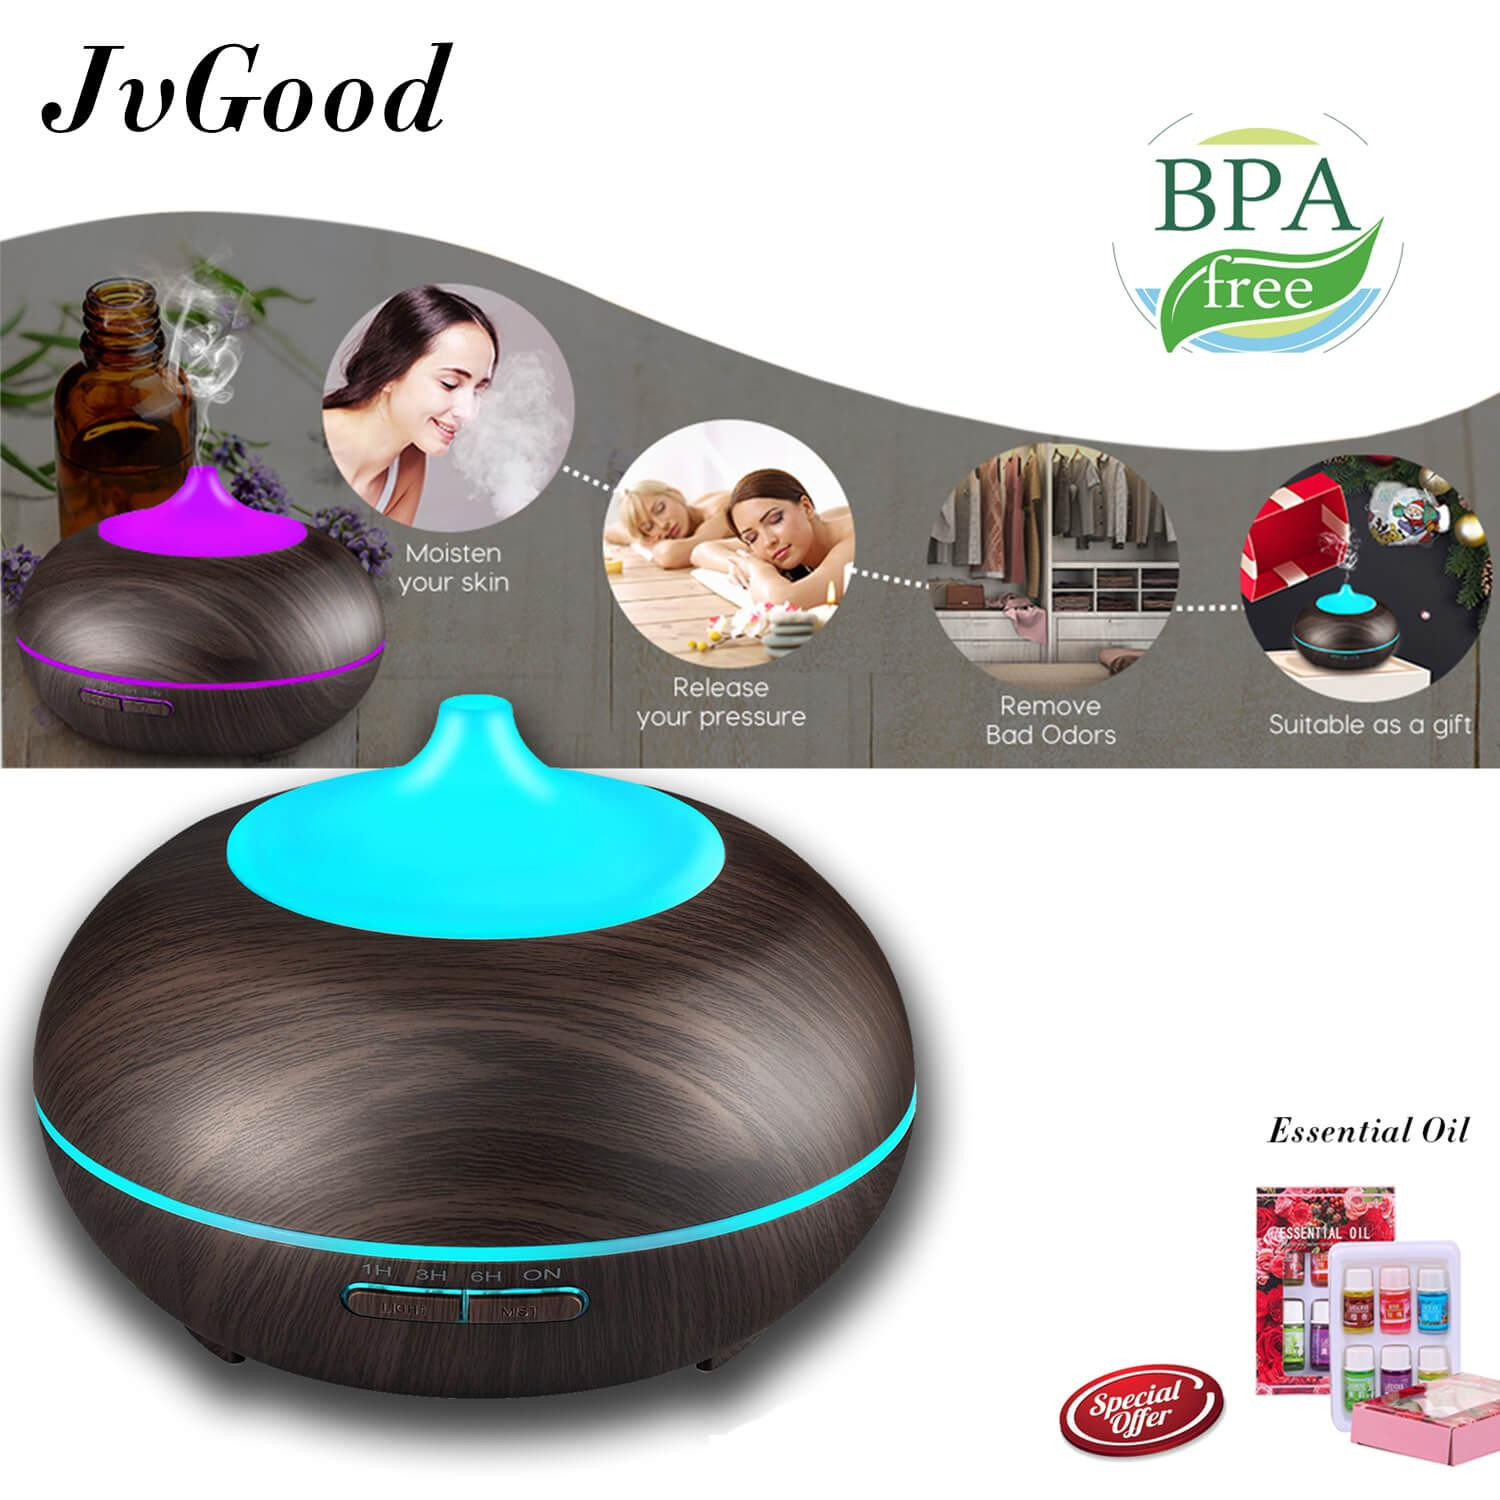 Buy Humidifier Products Vaporizers Lazada Car Vehicle Aromatherapy Aromaterapi Parfum Mobil Jvgood Air Ultrasonic Aroma Diffuser Cool Mist Essential Oil Wooden